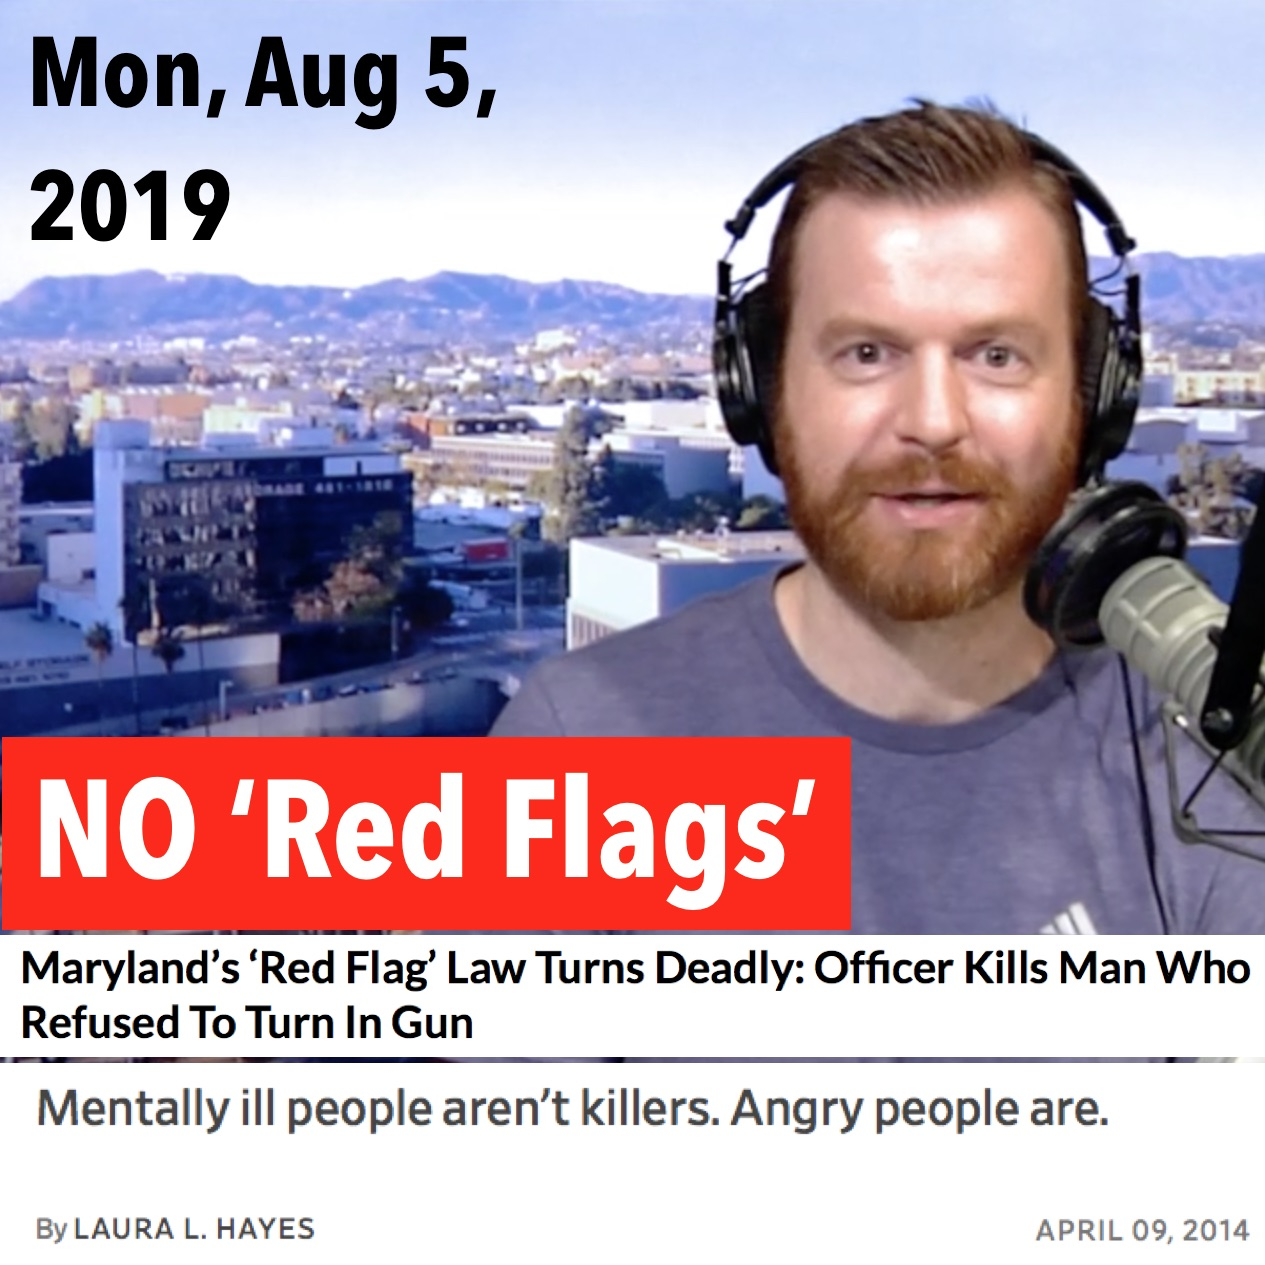 Square thumbnail from today's show, Monday, August 5, 2019: NO 'Red Flags' — with headlines of a story and article listed above.